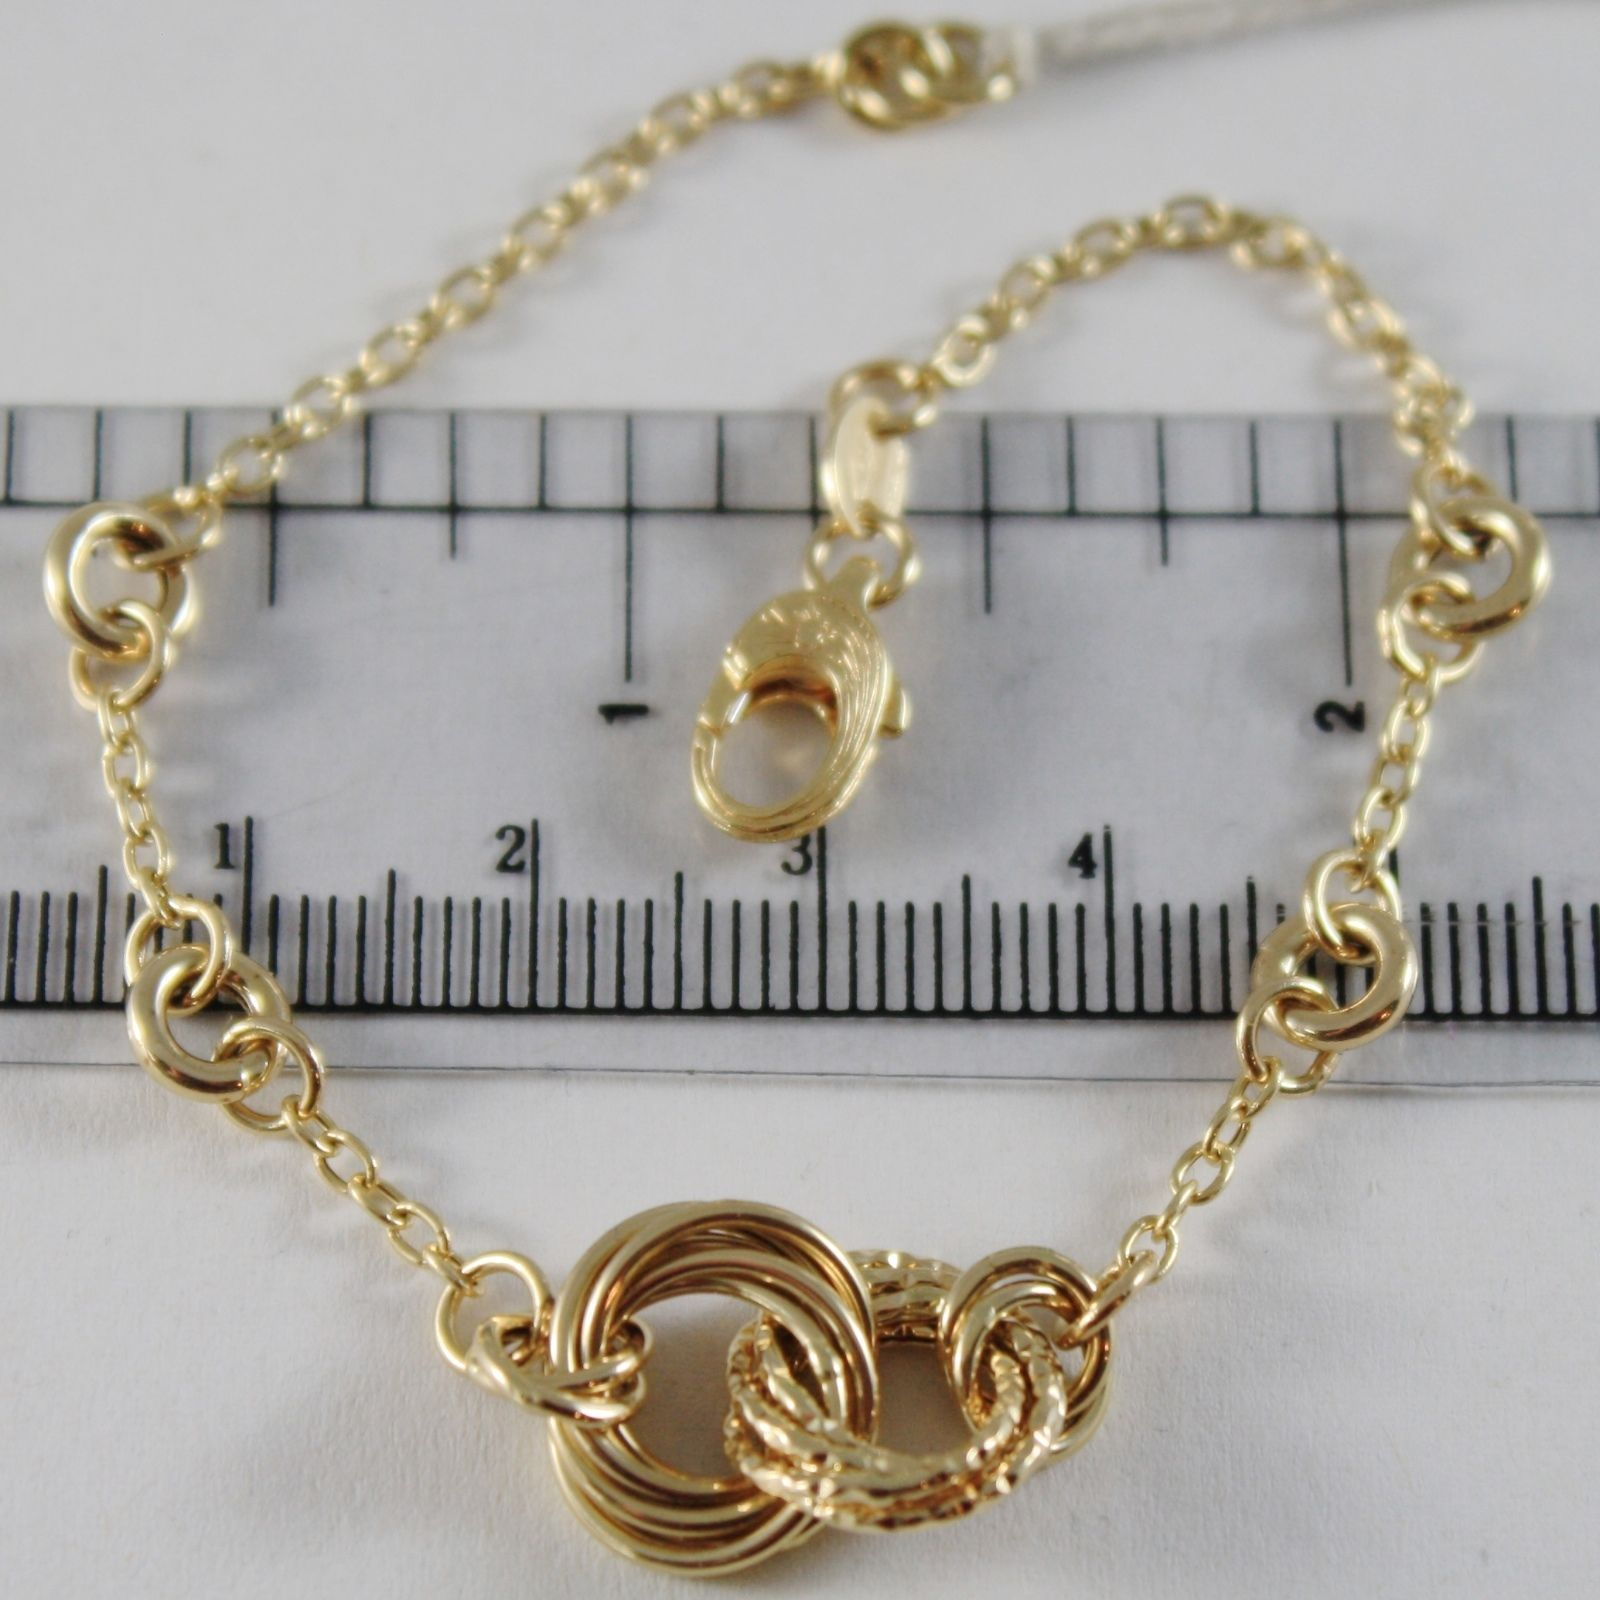 18K YELLOW GOLD BRACELET WORKED CROSSED CIRCLES 12 MM, 7.50 INCHES MADE IN ITALY